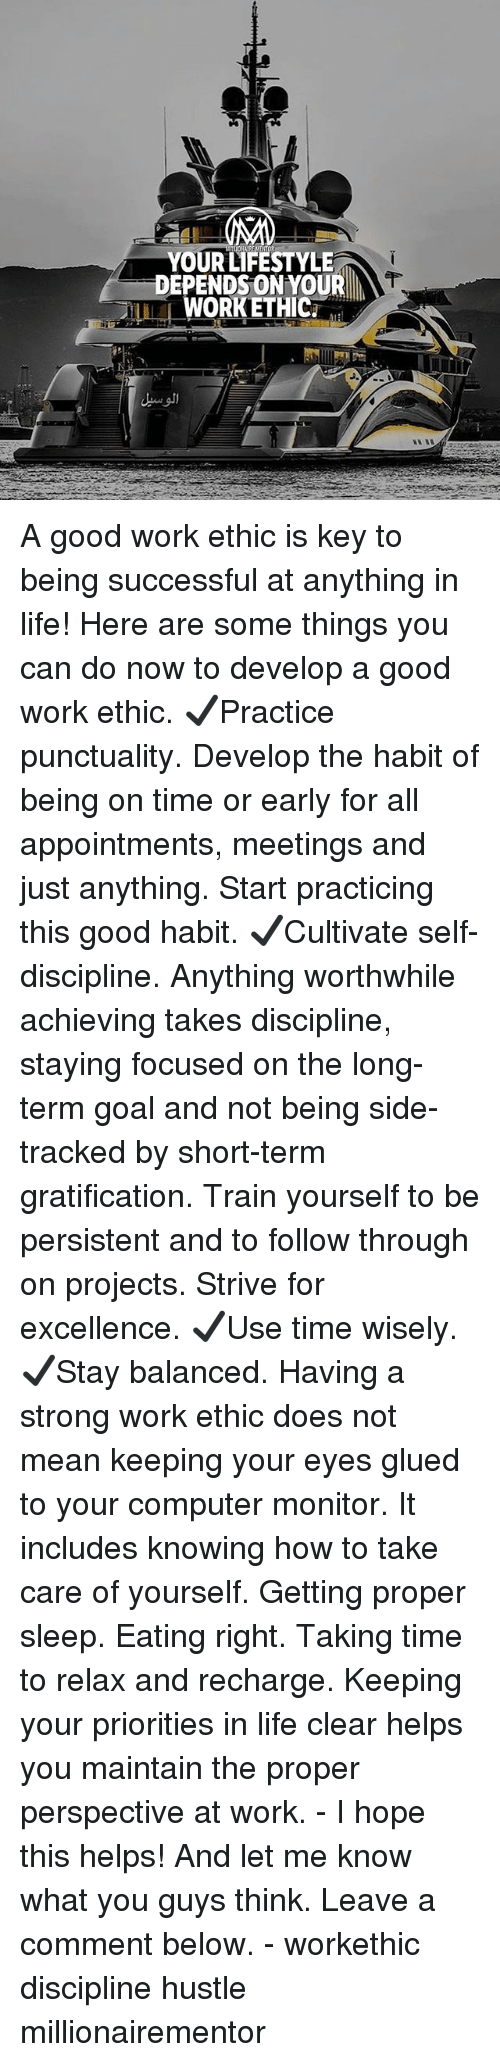 worthwhile: YOUR LIFESTYLE  DEPENDSON YOUR  WORKETHIC. A good work ethic is key to being successful at anything in life! Here are some things you can do now to develop a good work ethic. ✔️Practice punctuality. Develop the habit of being on time or early for all appointments, meetings and just anything. Start practicing this good habit. ✔️Cultivate self-discipline. Anything worthwhile achieving takes discipline, staying focused on the long-term goal and not being side-tracked by short-term gratification. Train yourself to be persistent and to follow through on projects. Strive for excellence. ✔️Use time wisely. ✔️Stay balanced. Having a strong work ethic does not mean keeping your eyes glued to your computer monitor. It includes knowing how to take care of yourself. Getting proper sleep. Eating right. Taking time to relax and recharge. Keeping your priorities in life clear helps you maintain the proper perspective at work. - I hope this helps! And let me know what you guys think. Leave a comment below. - workethic discipline hustle millionairementor